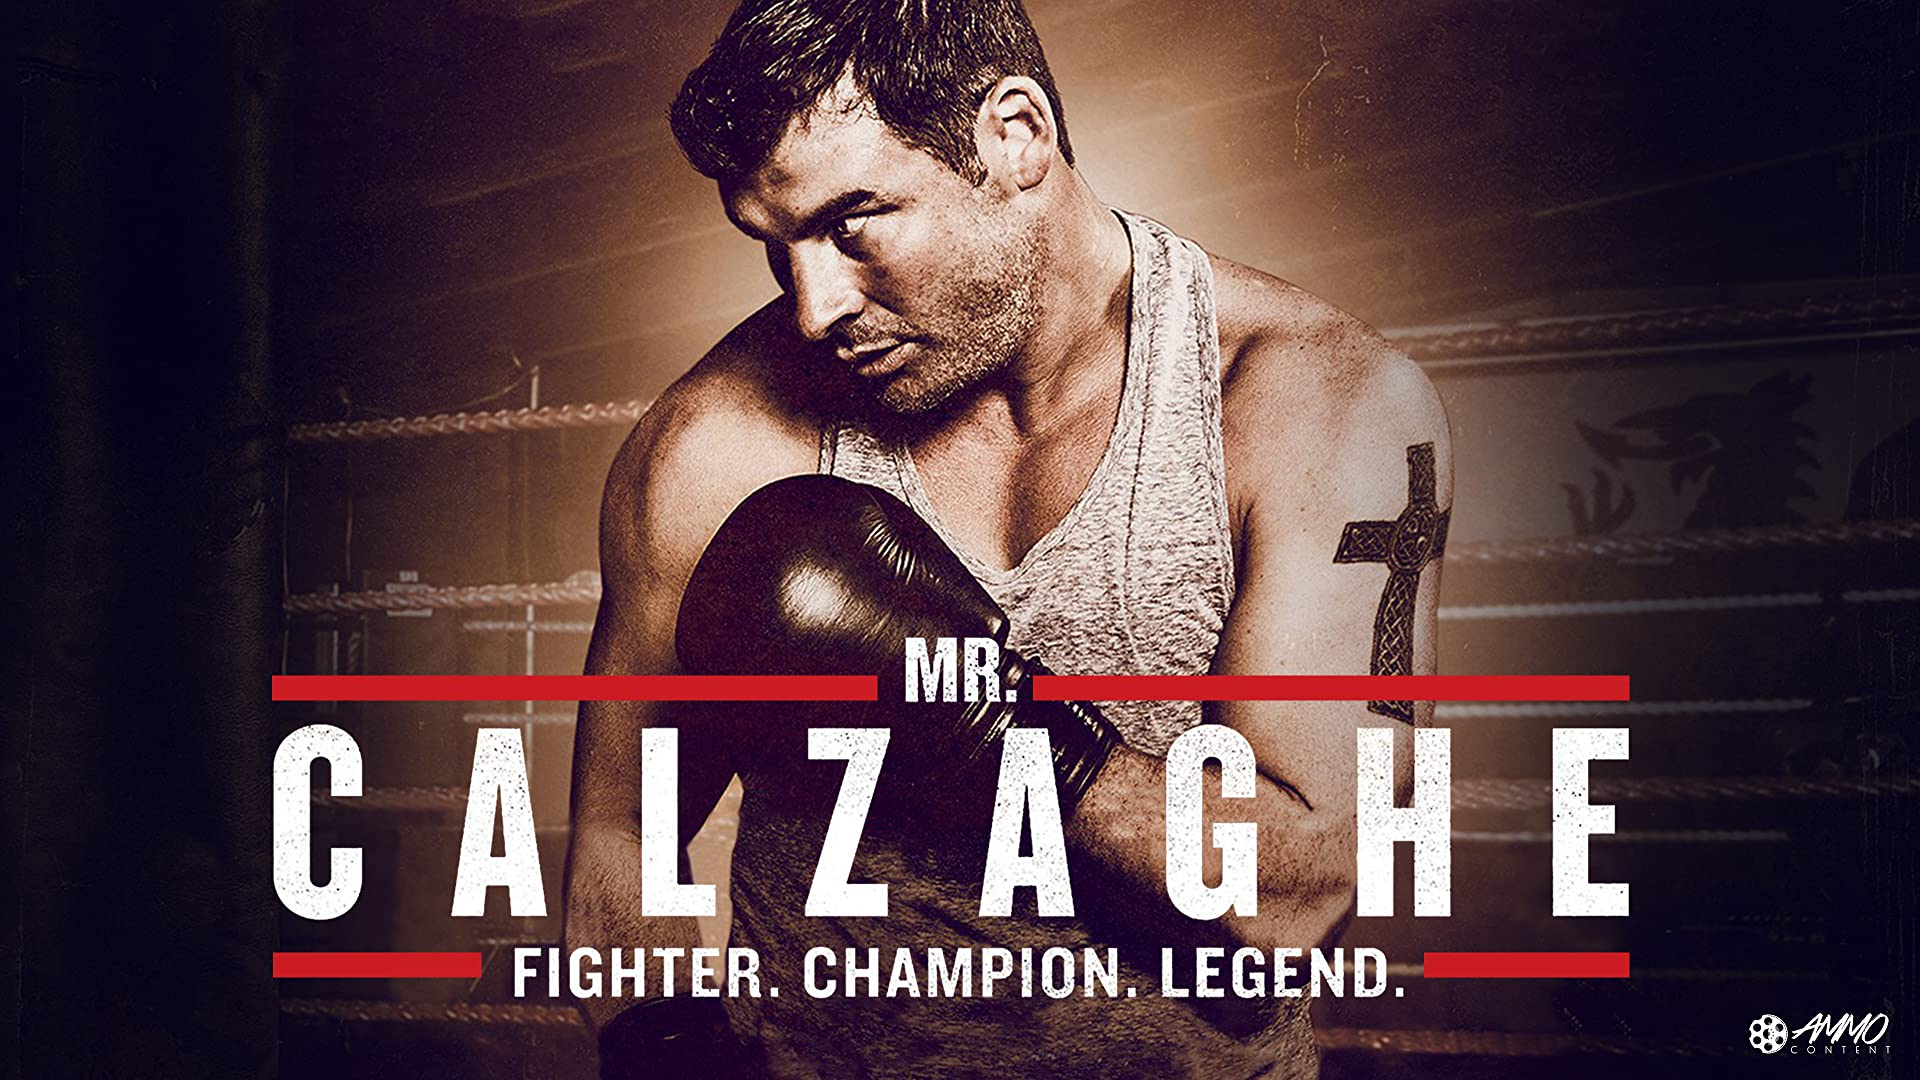 Mr. Calzaghe